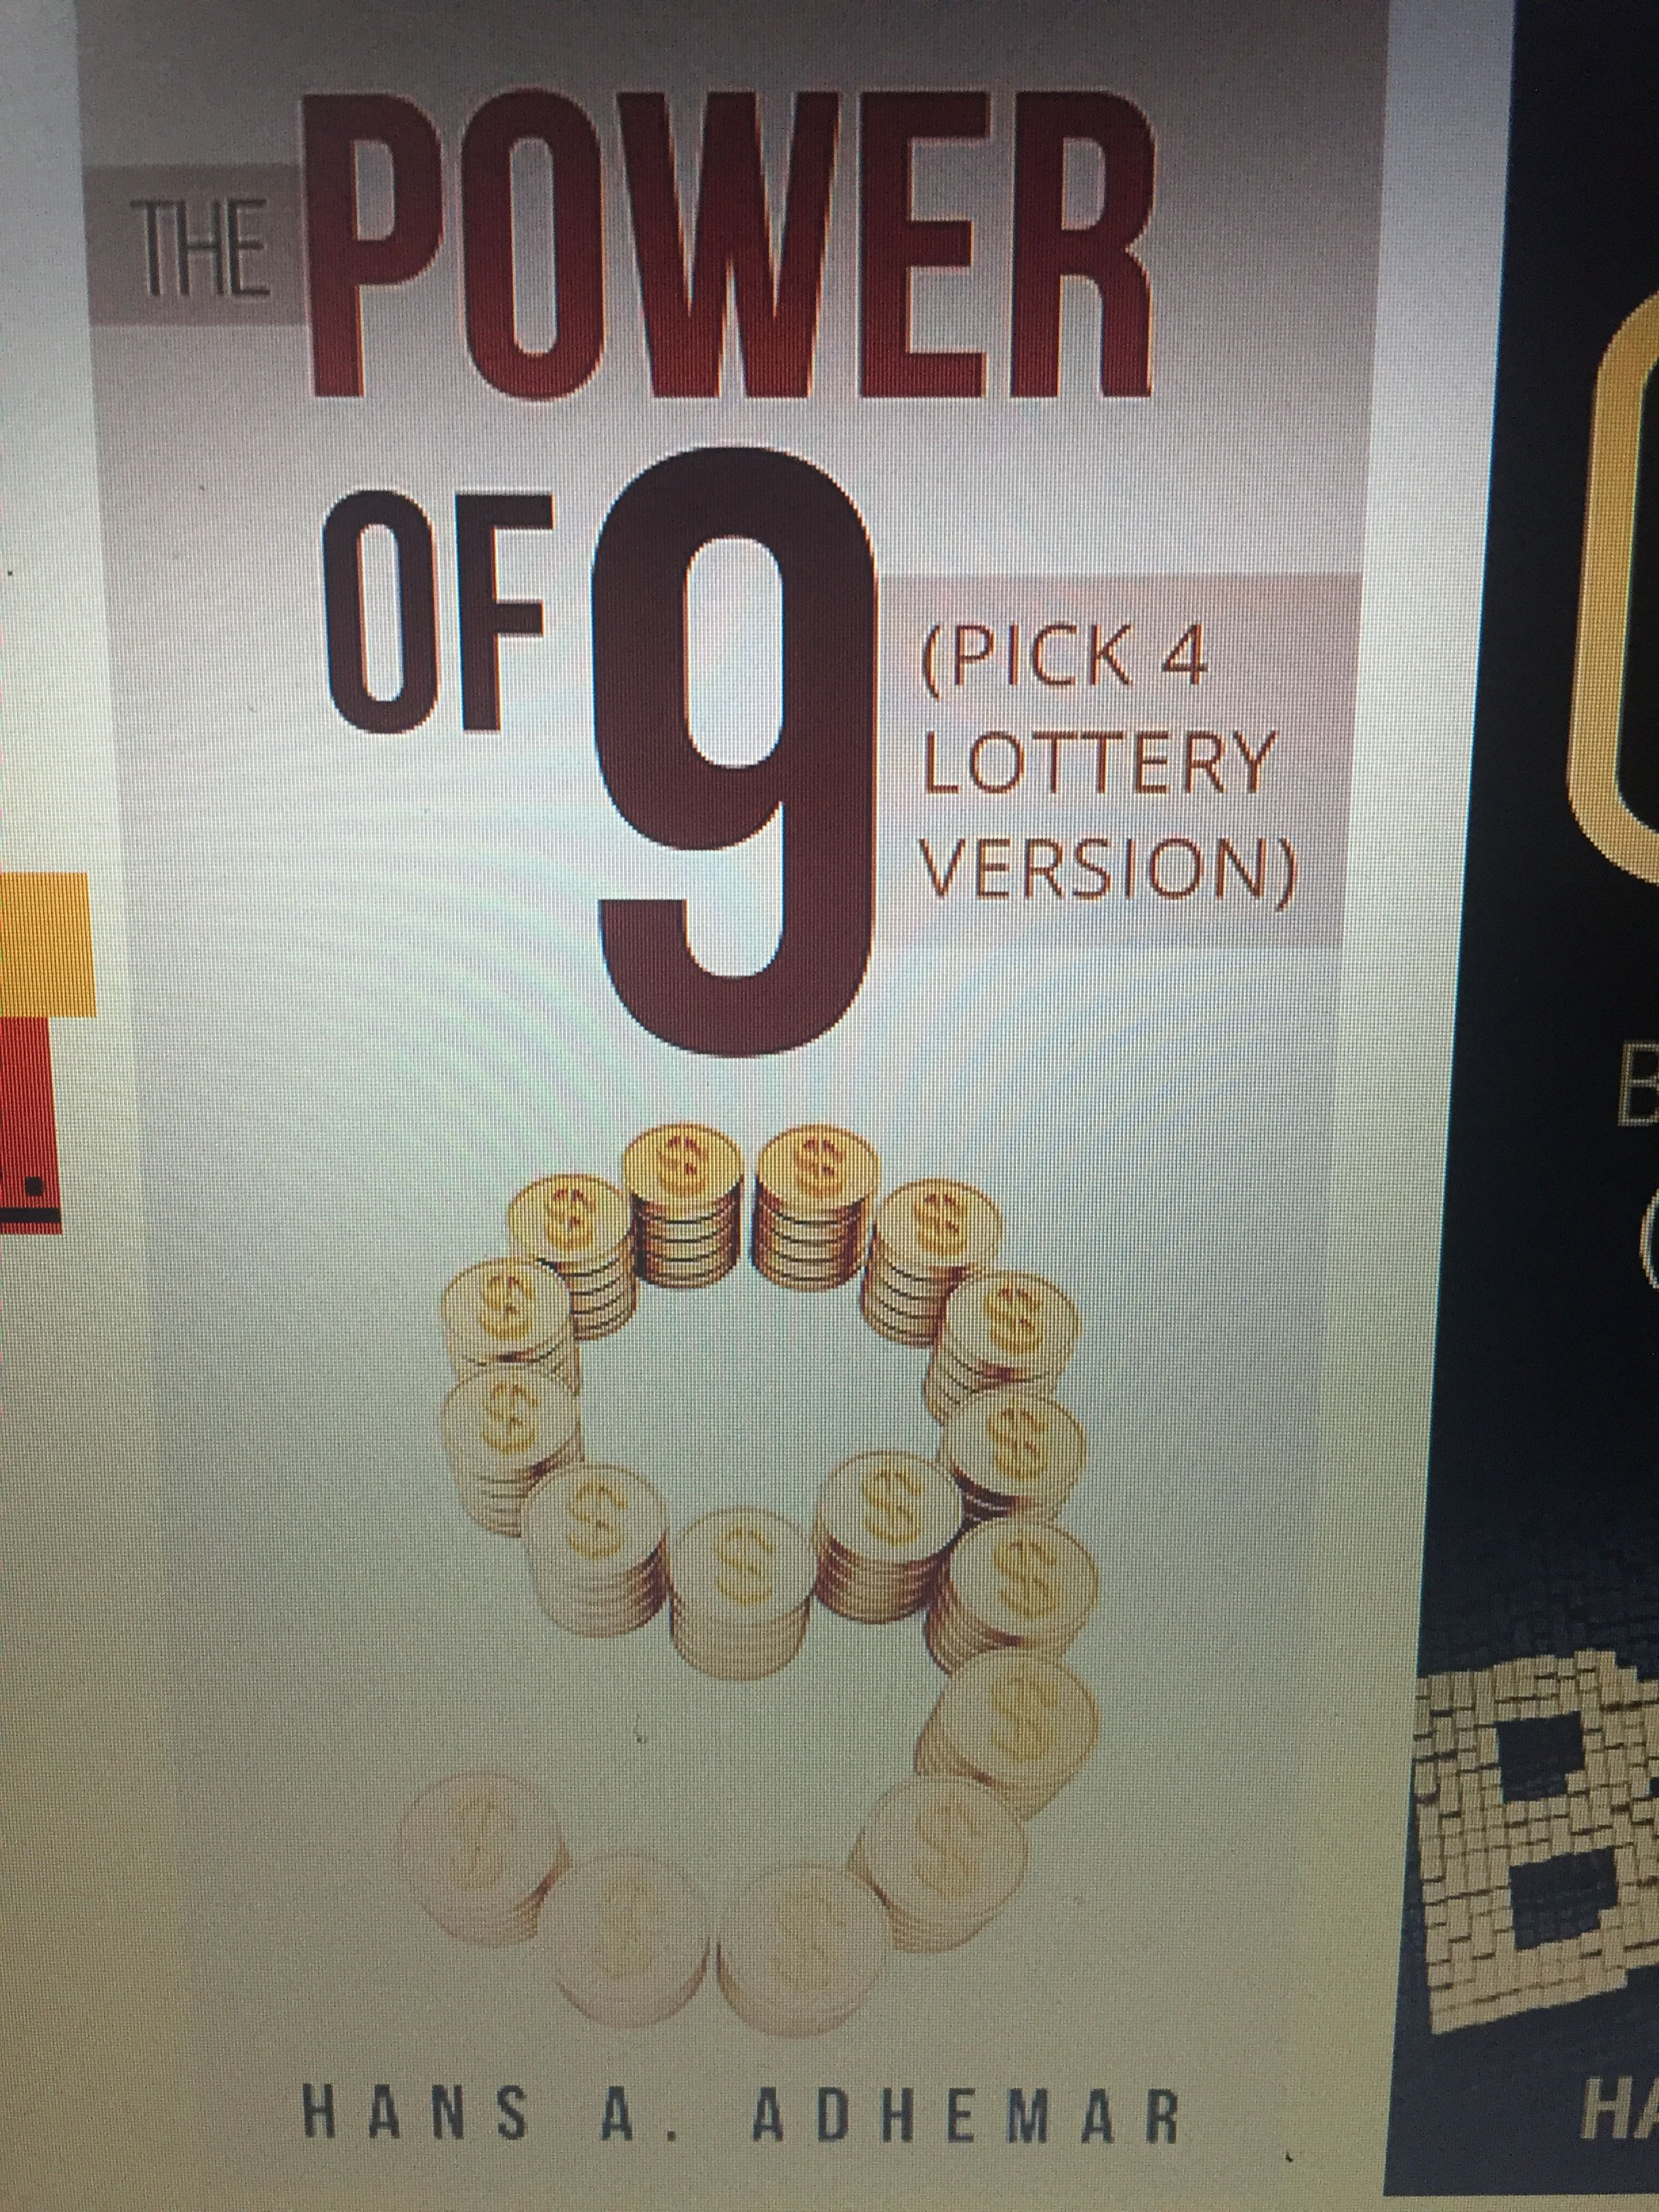 Pick 3 Lottery Systems Methods To Millions